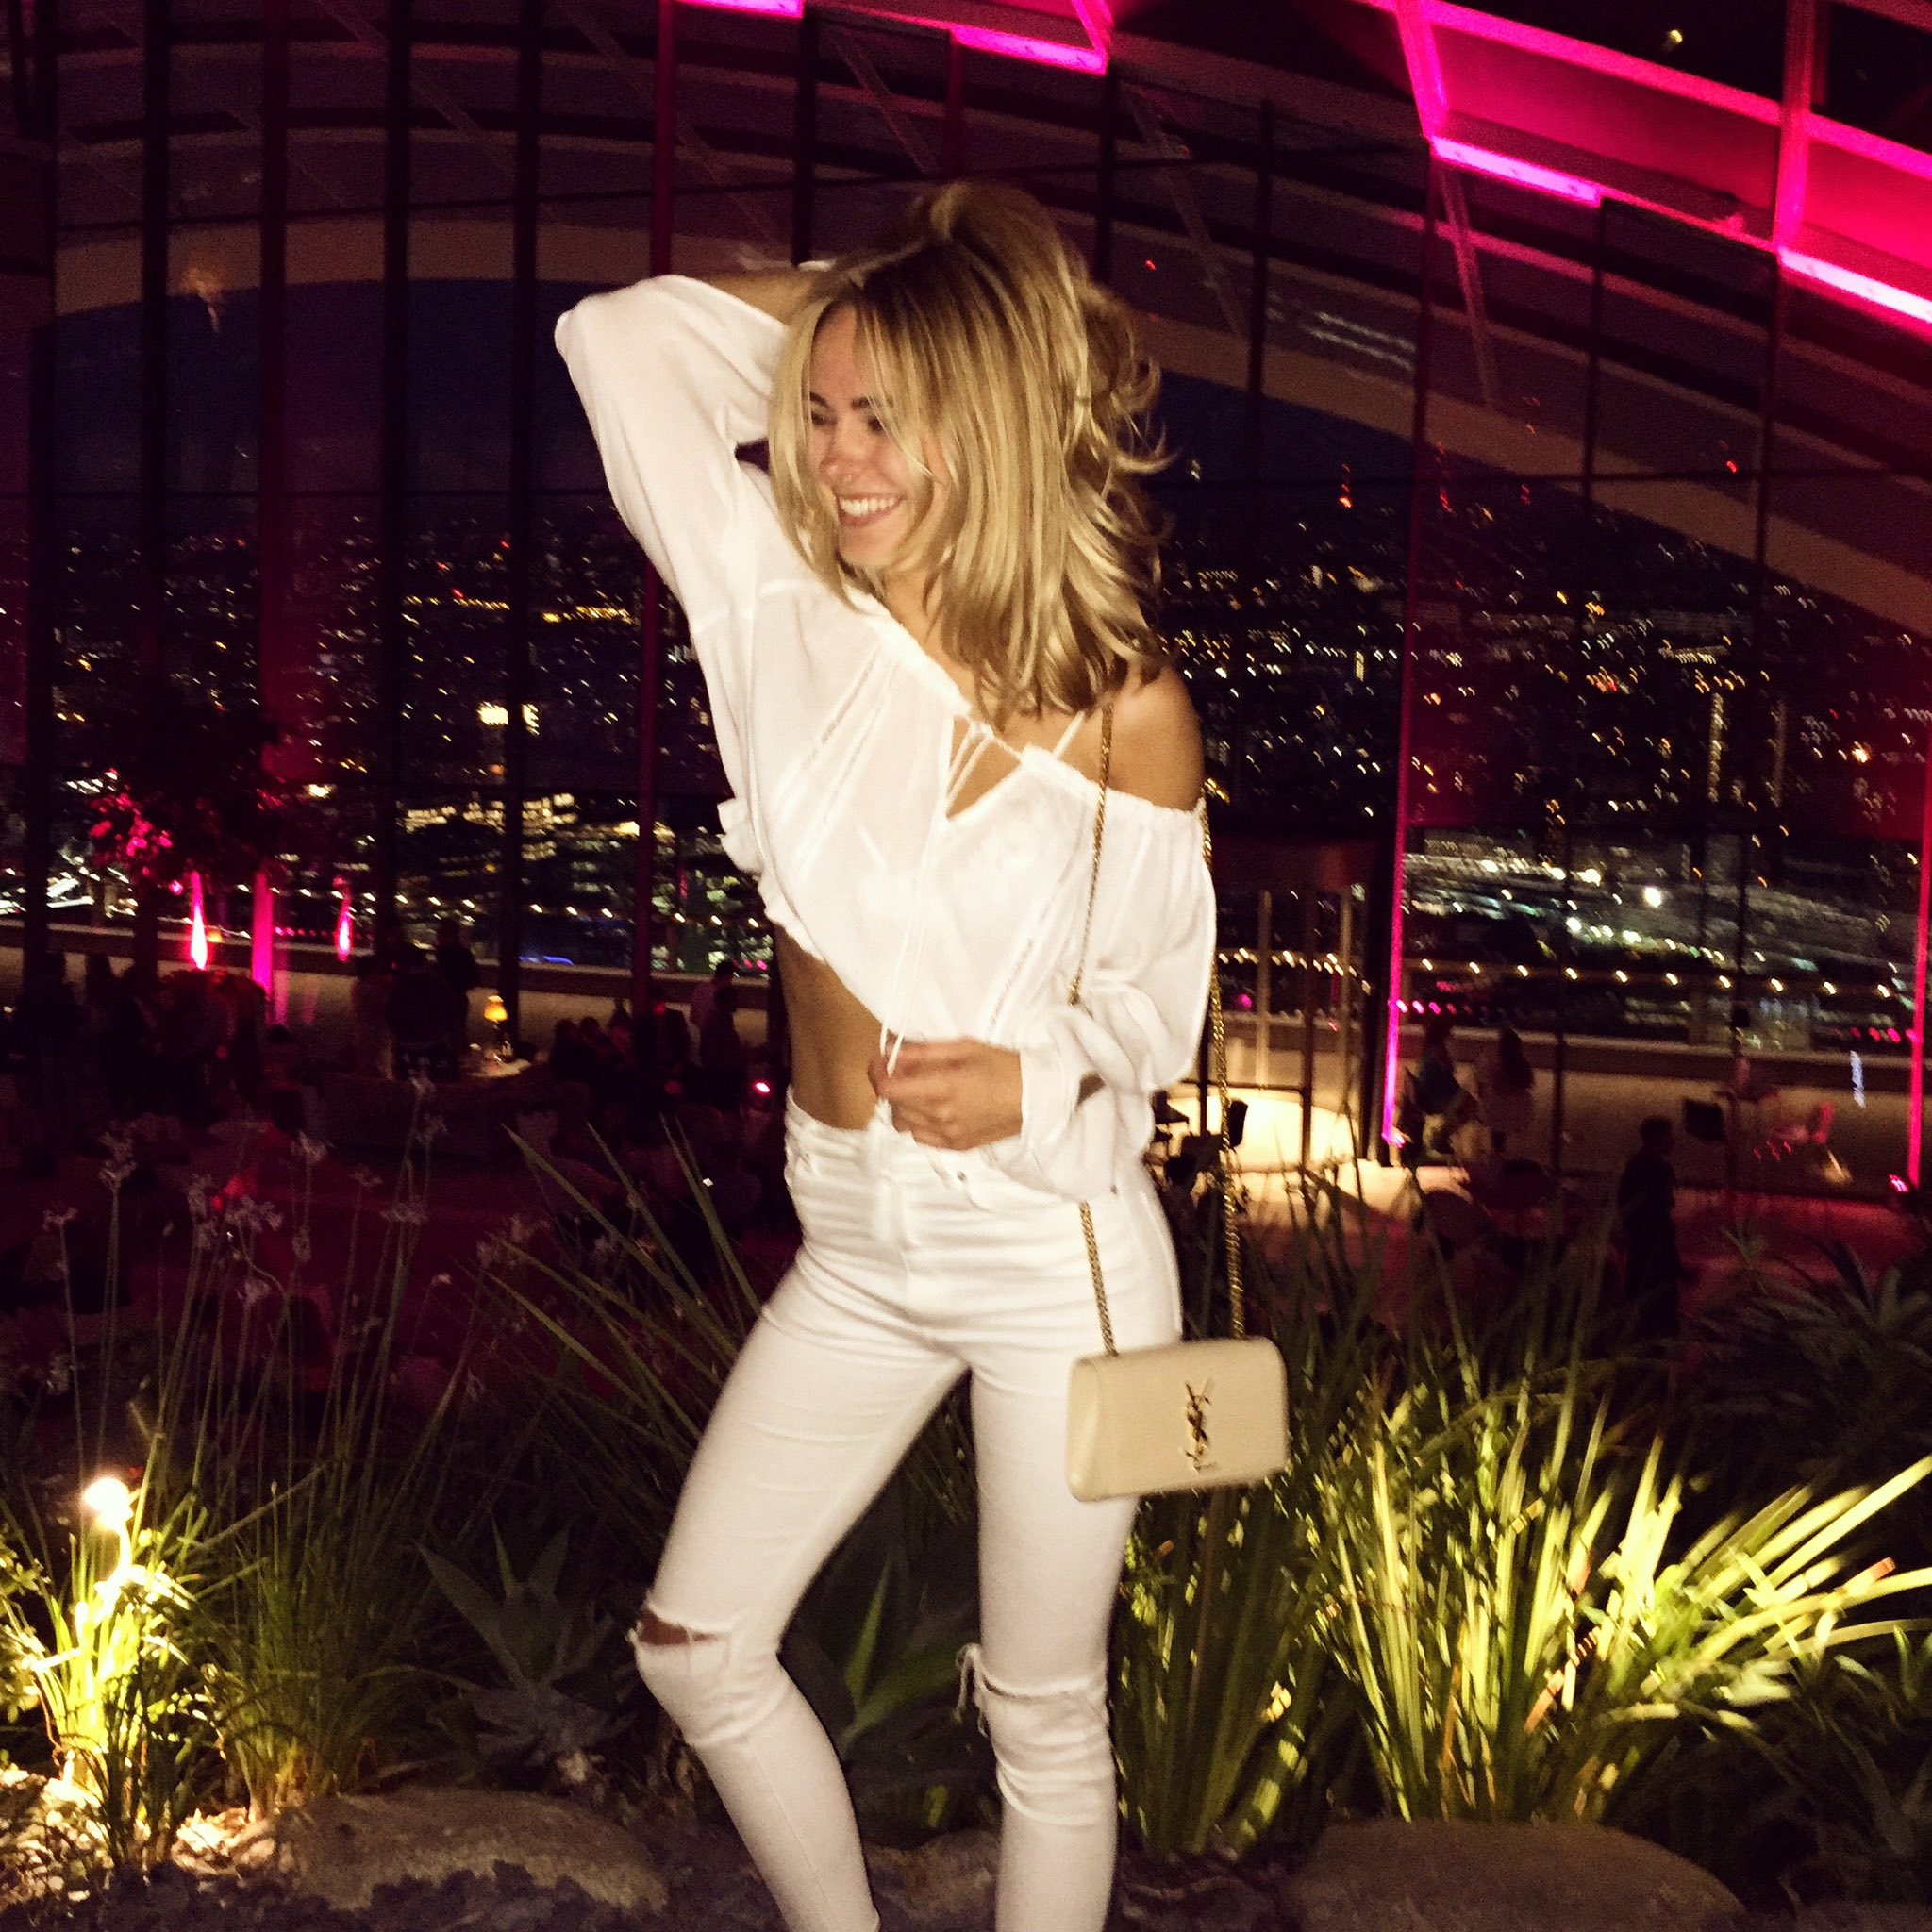 All white ✨ didn't have any plans so we went on a london drive and found @sg_skygarden https://t.co/HqOjgkvQTE